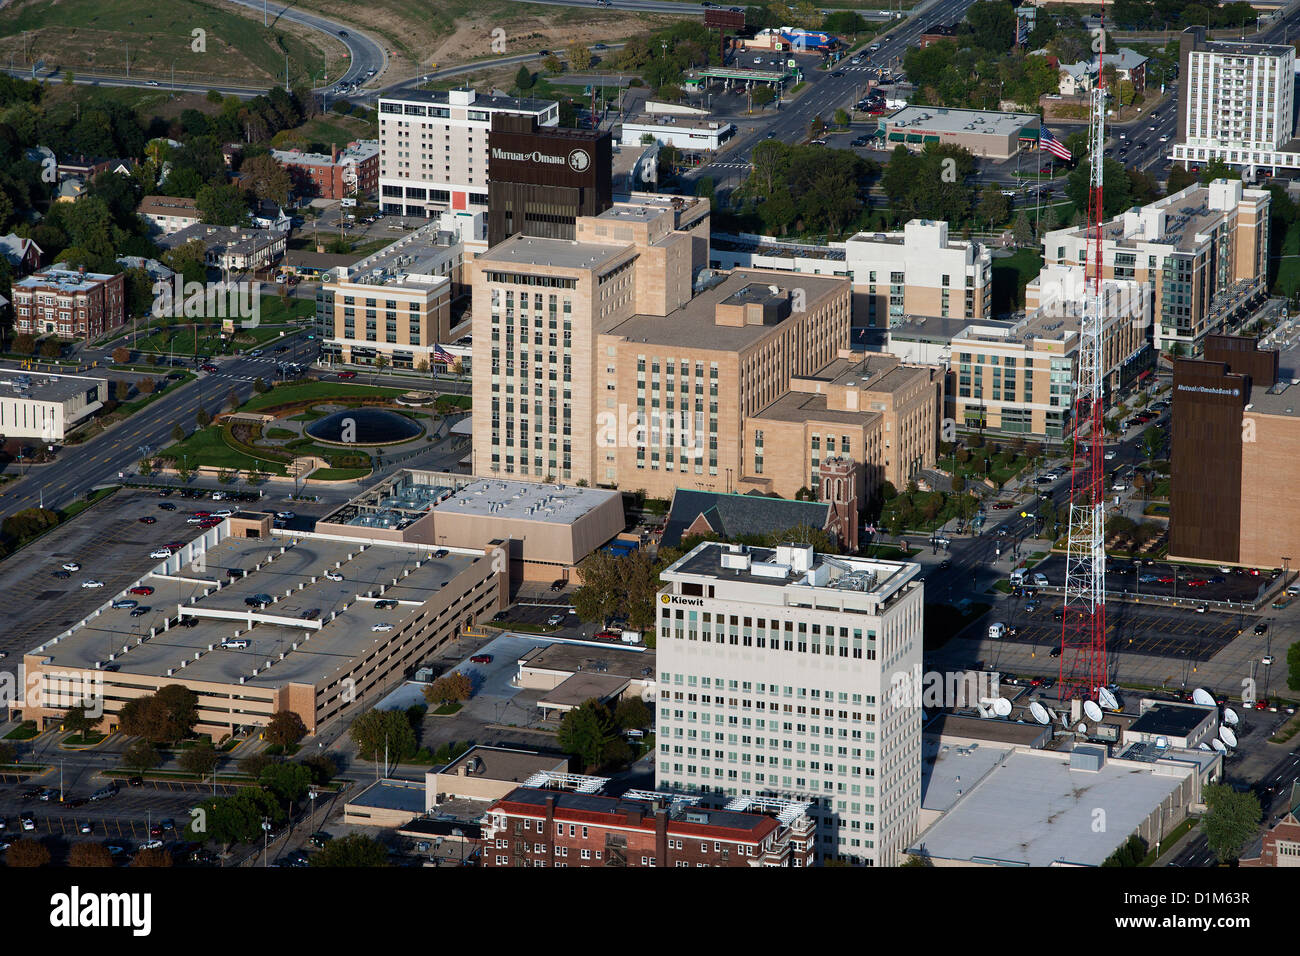 aerial photograph Kiewit and Mutual of Omaha headquarters, Omaha, Nebraska - Stock Image